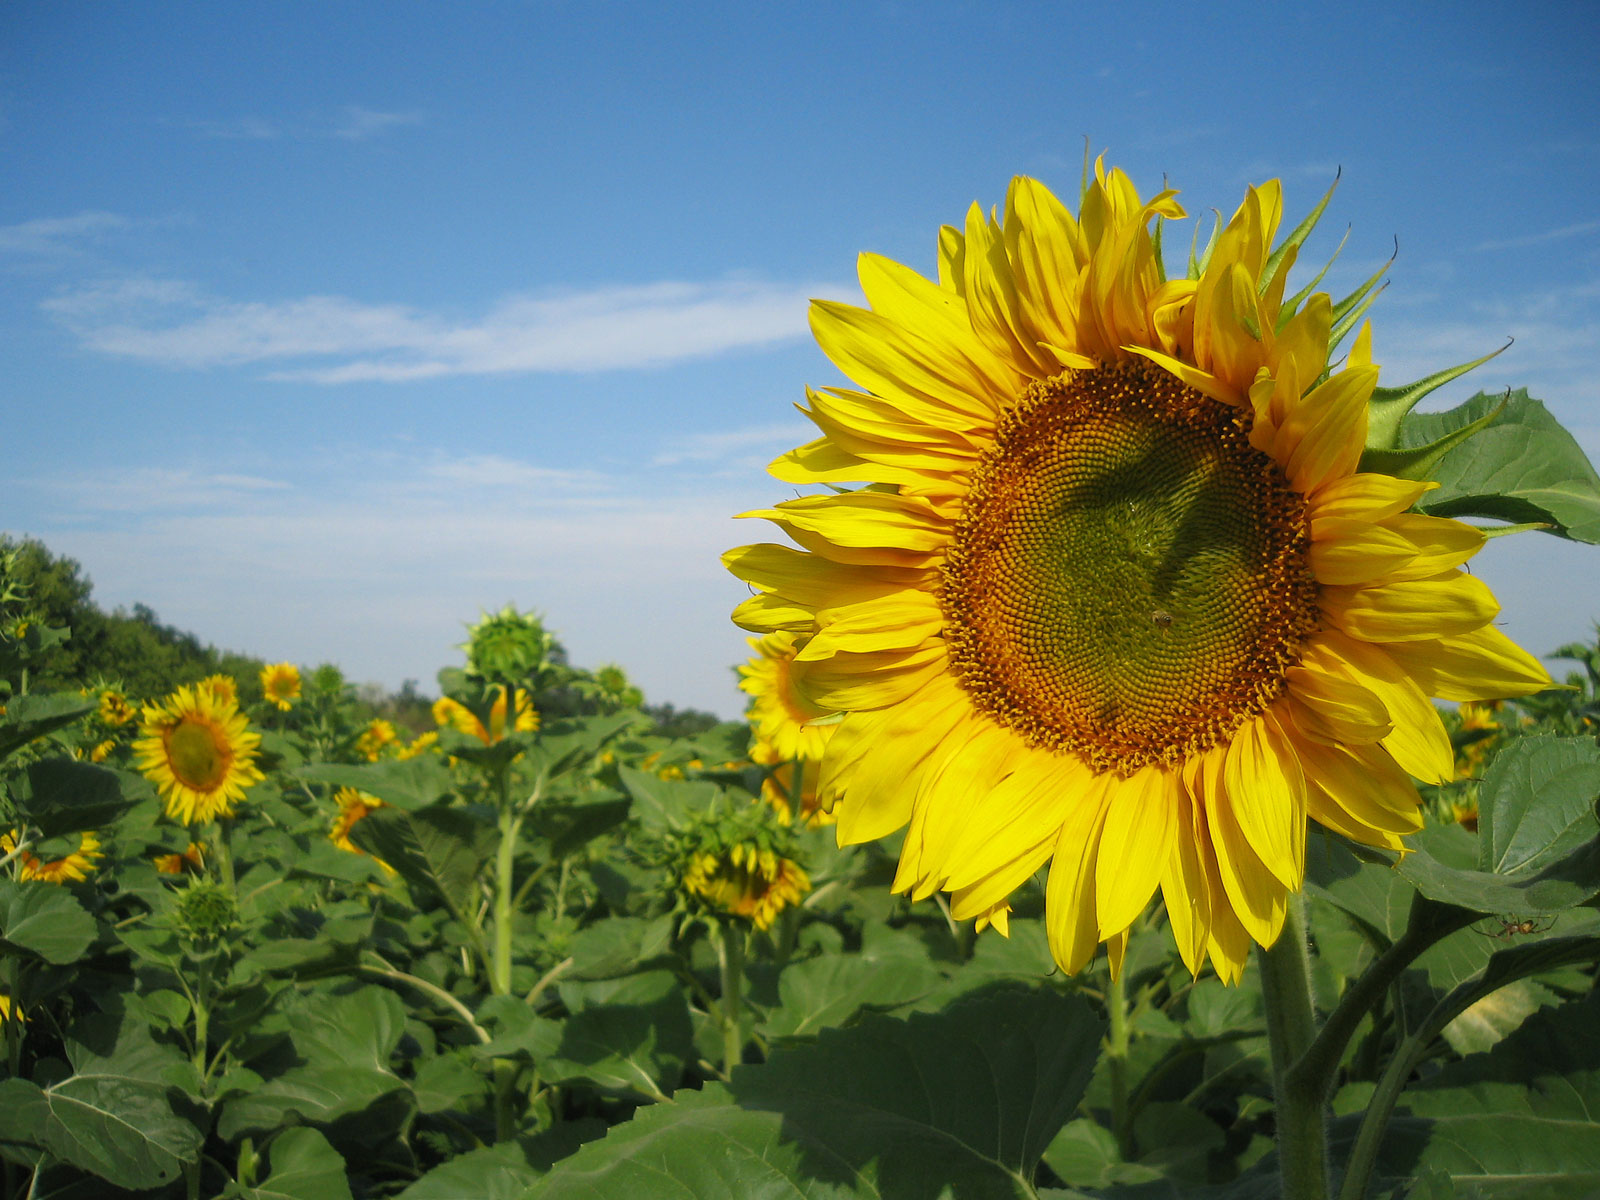 Sunflowers Nature Wallpapers | HD Wallpapers